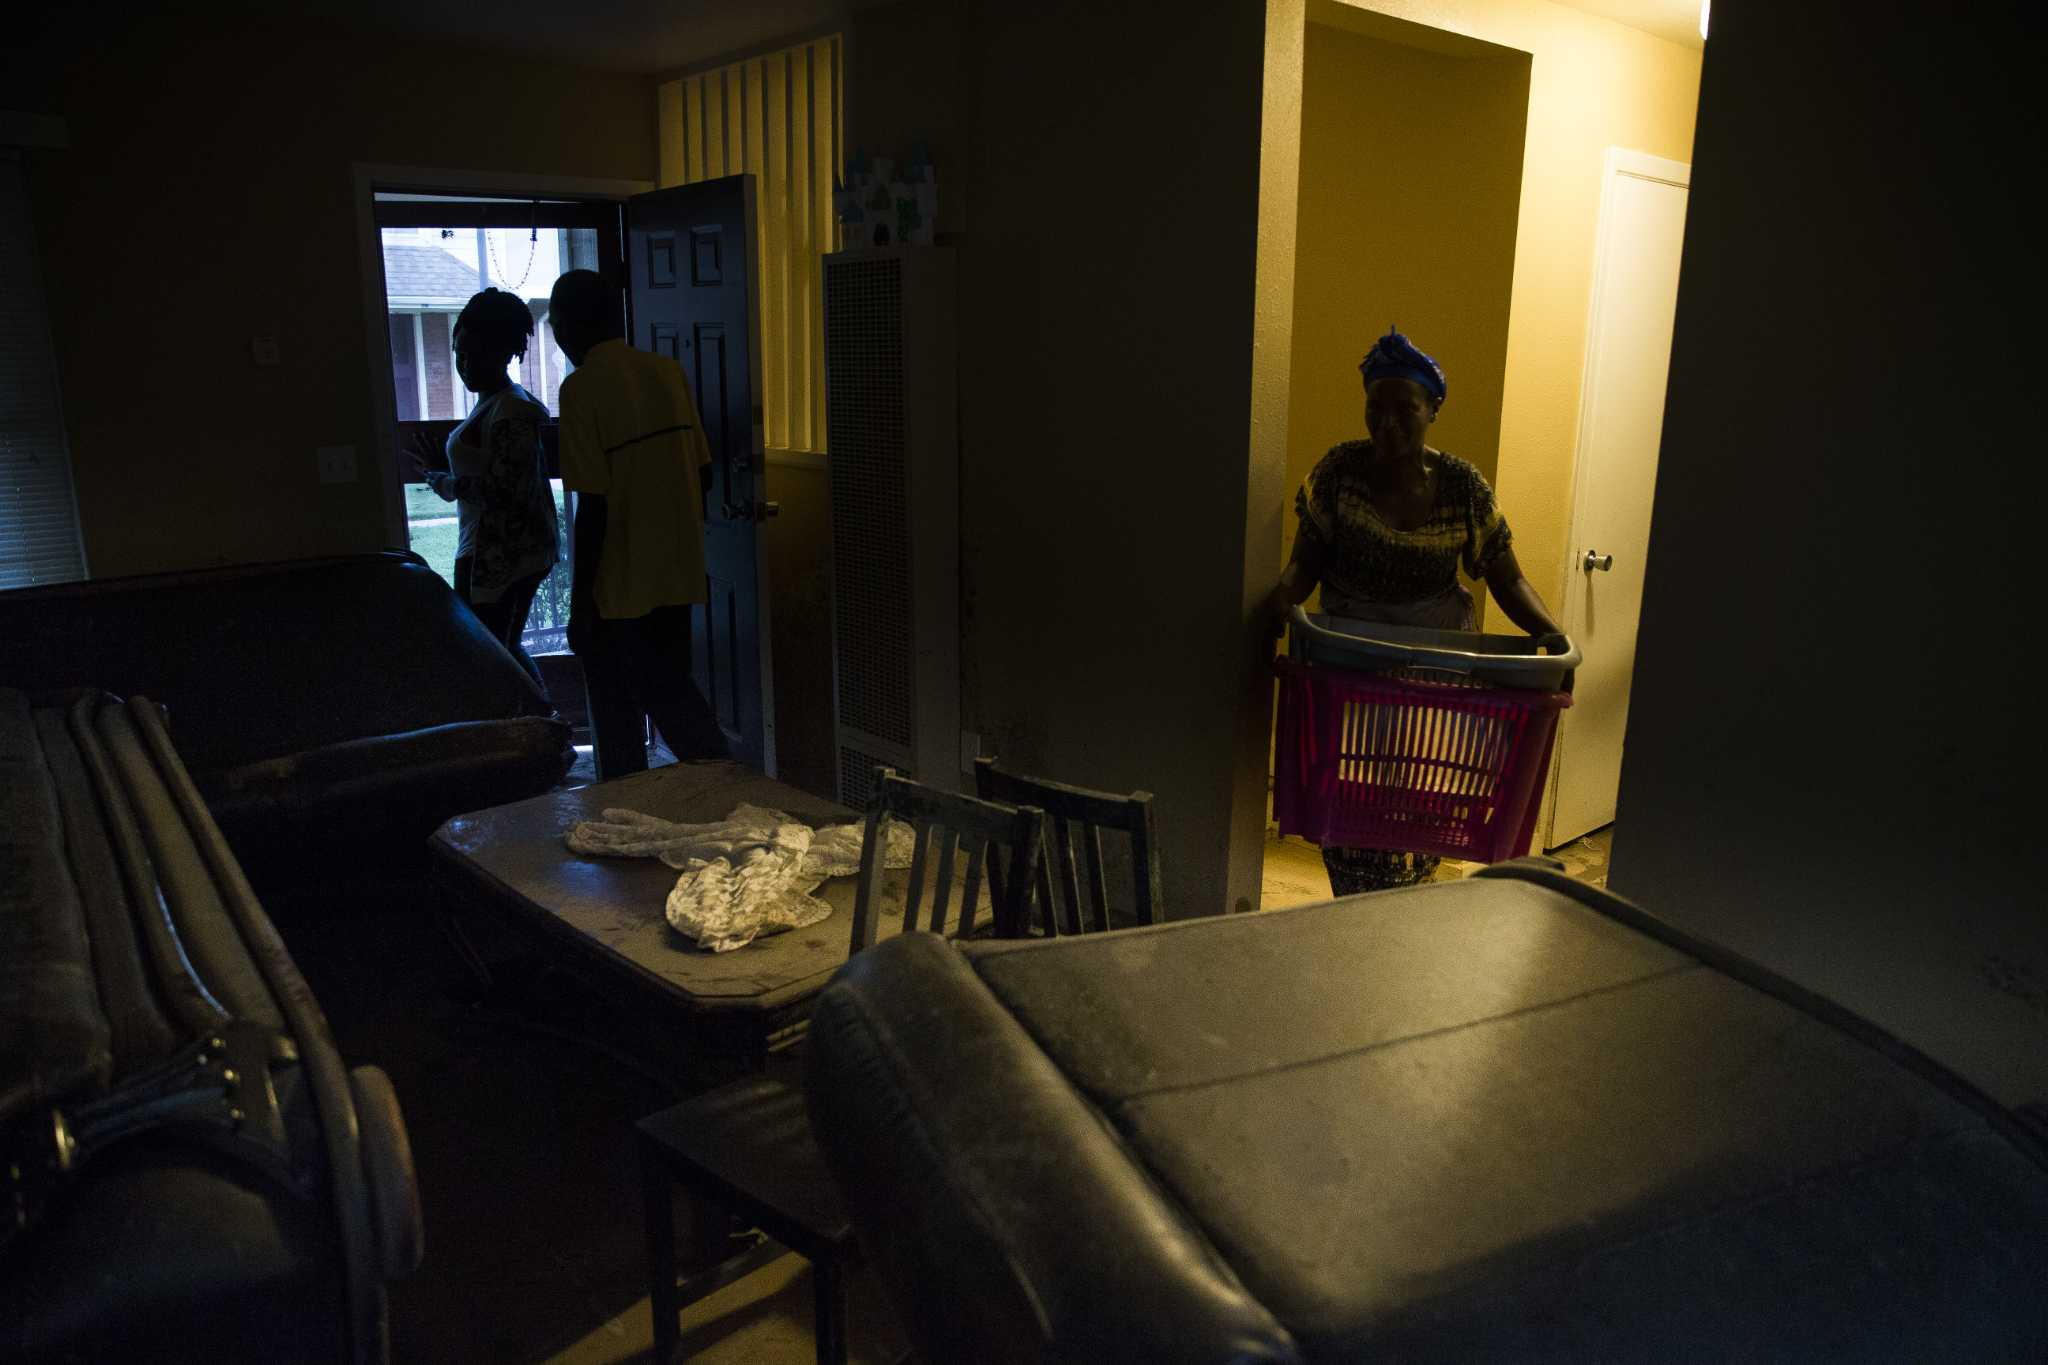 About 70 percent of Houstonians flooded in public housing units paid September rent